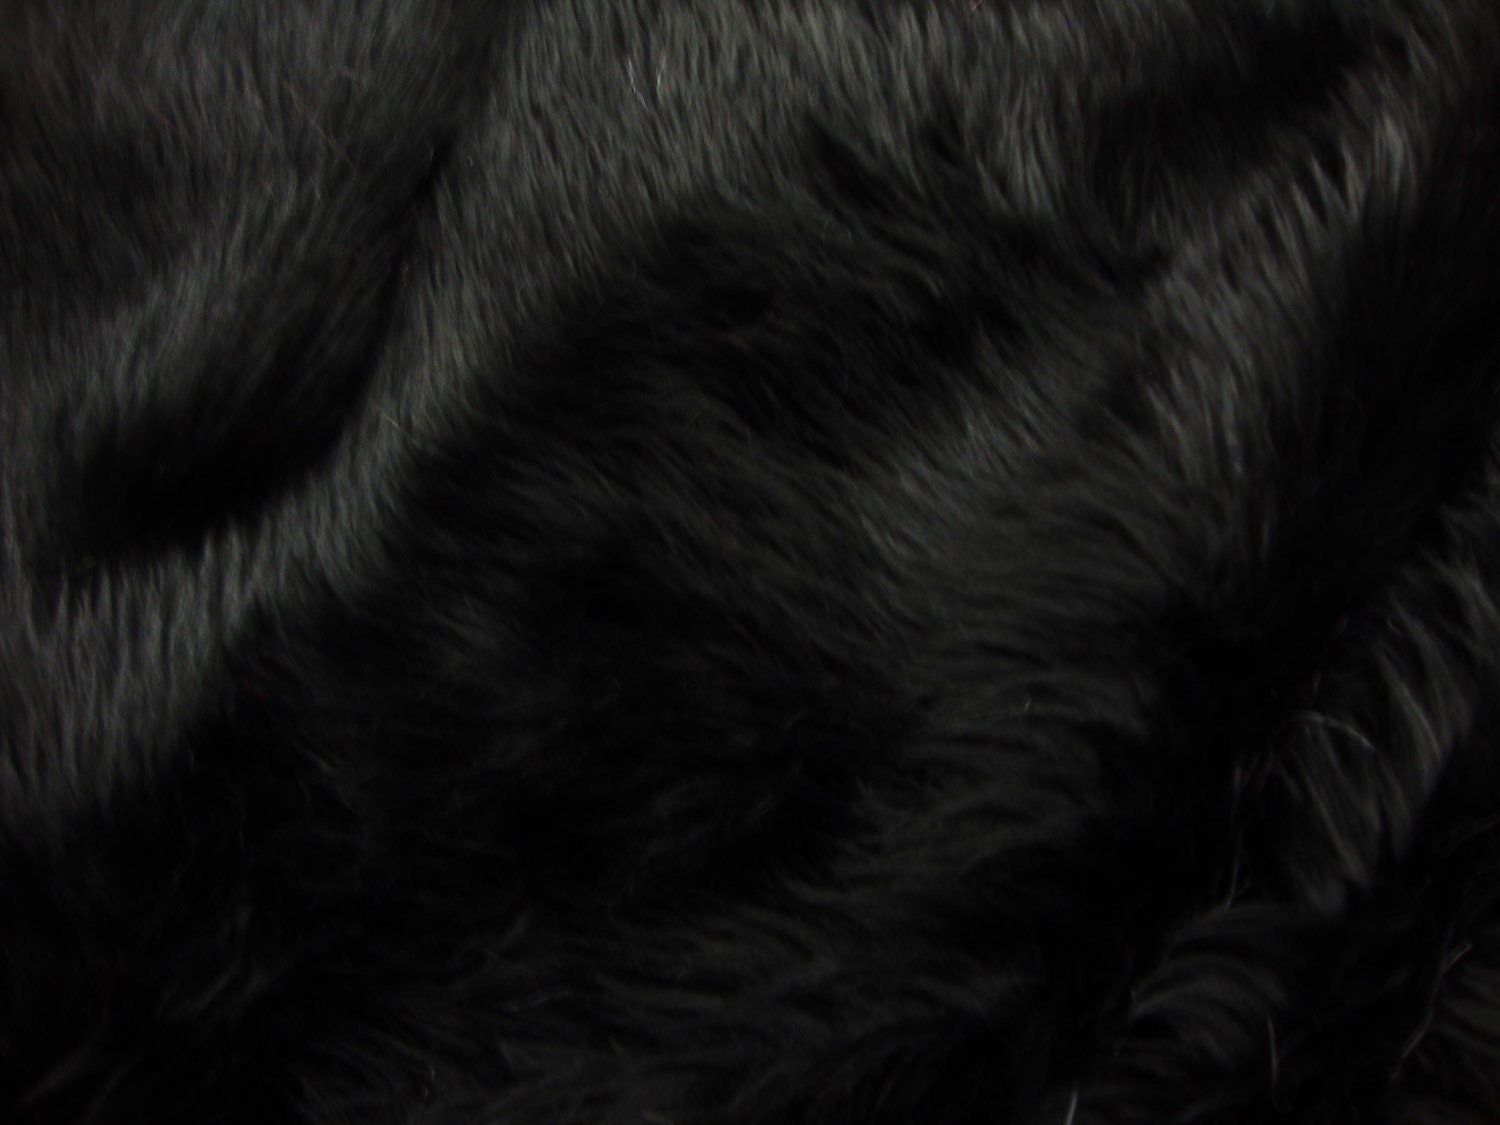 black faux fur rug 10 x 12 black shaggy fur faux fur rug rectangle 4669